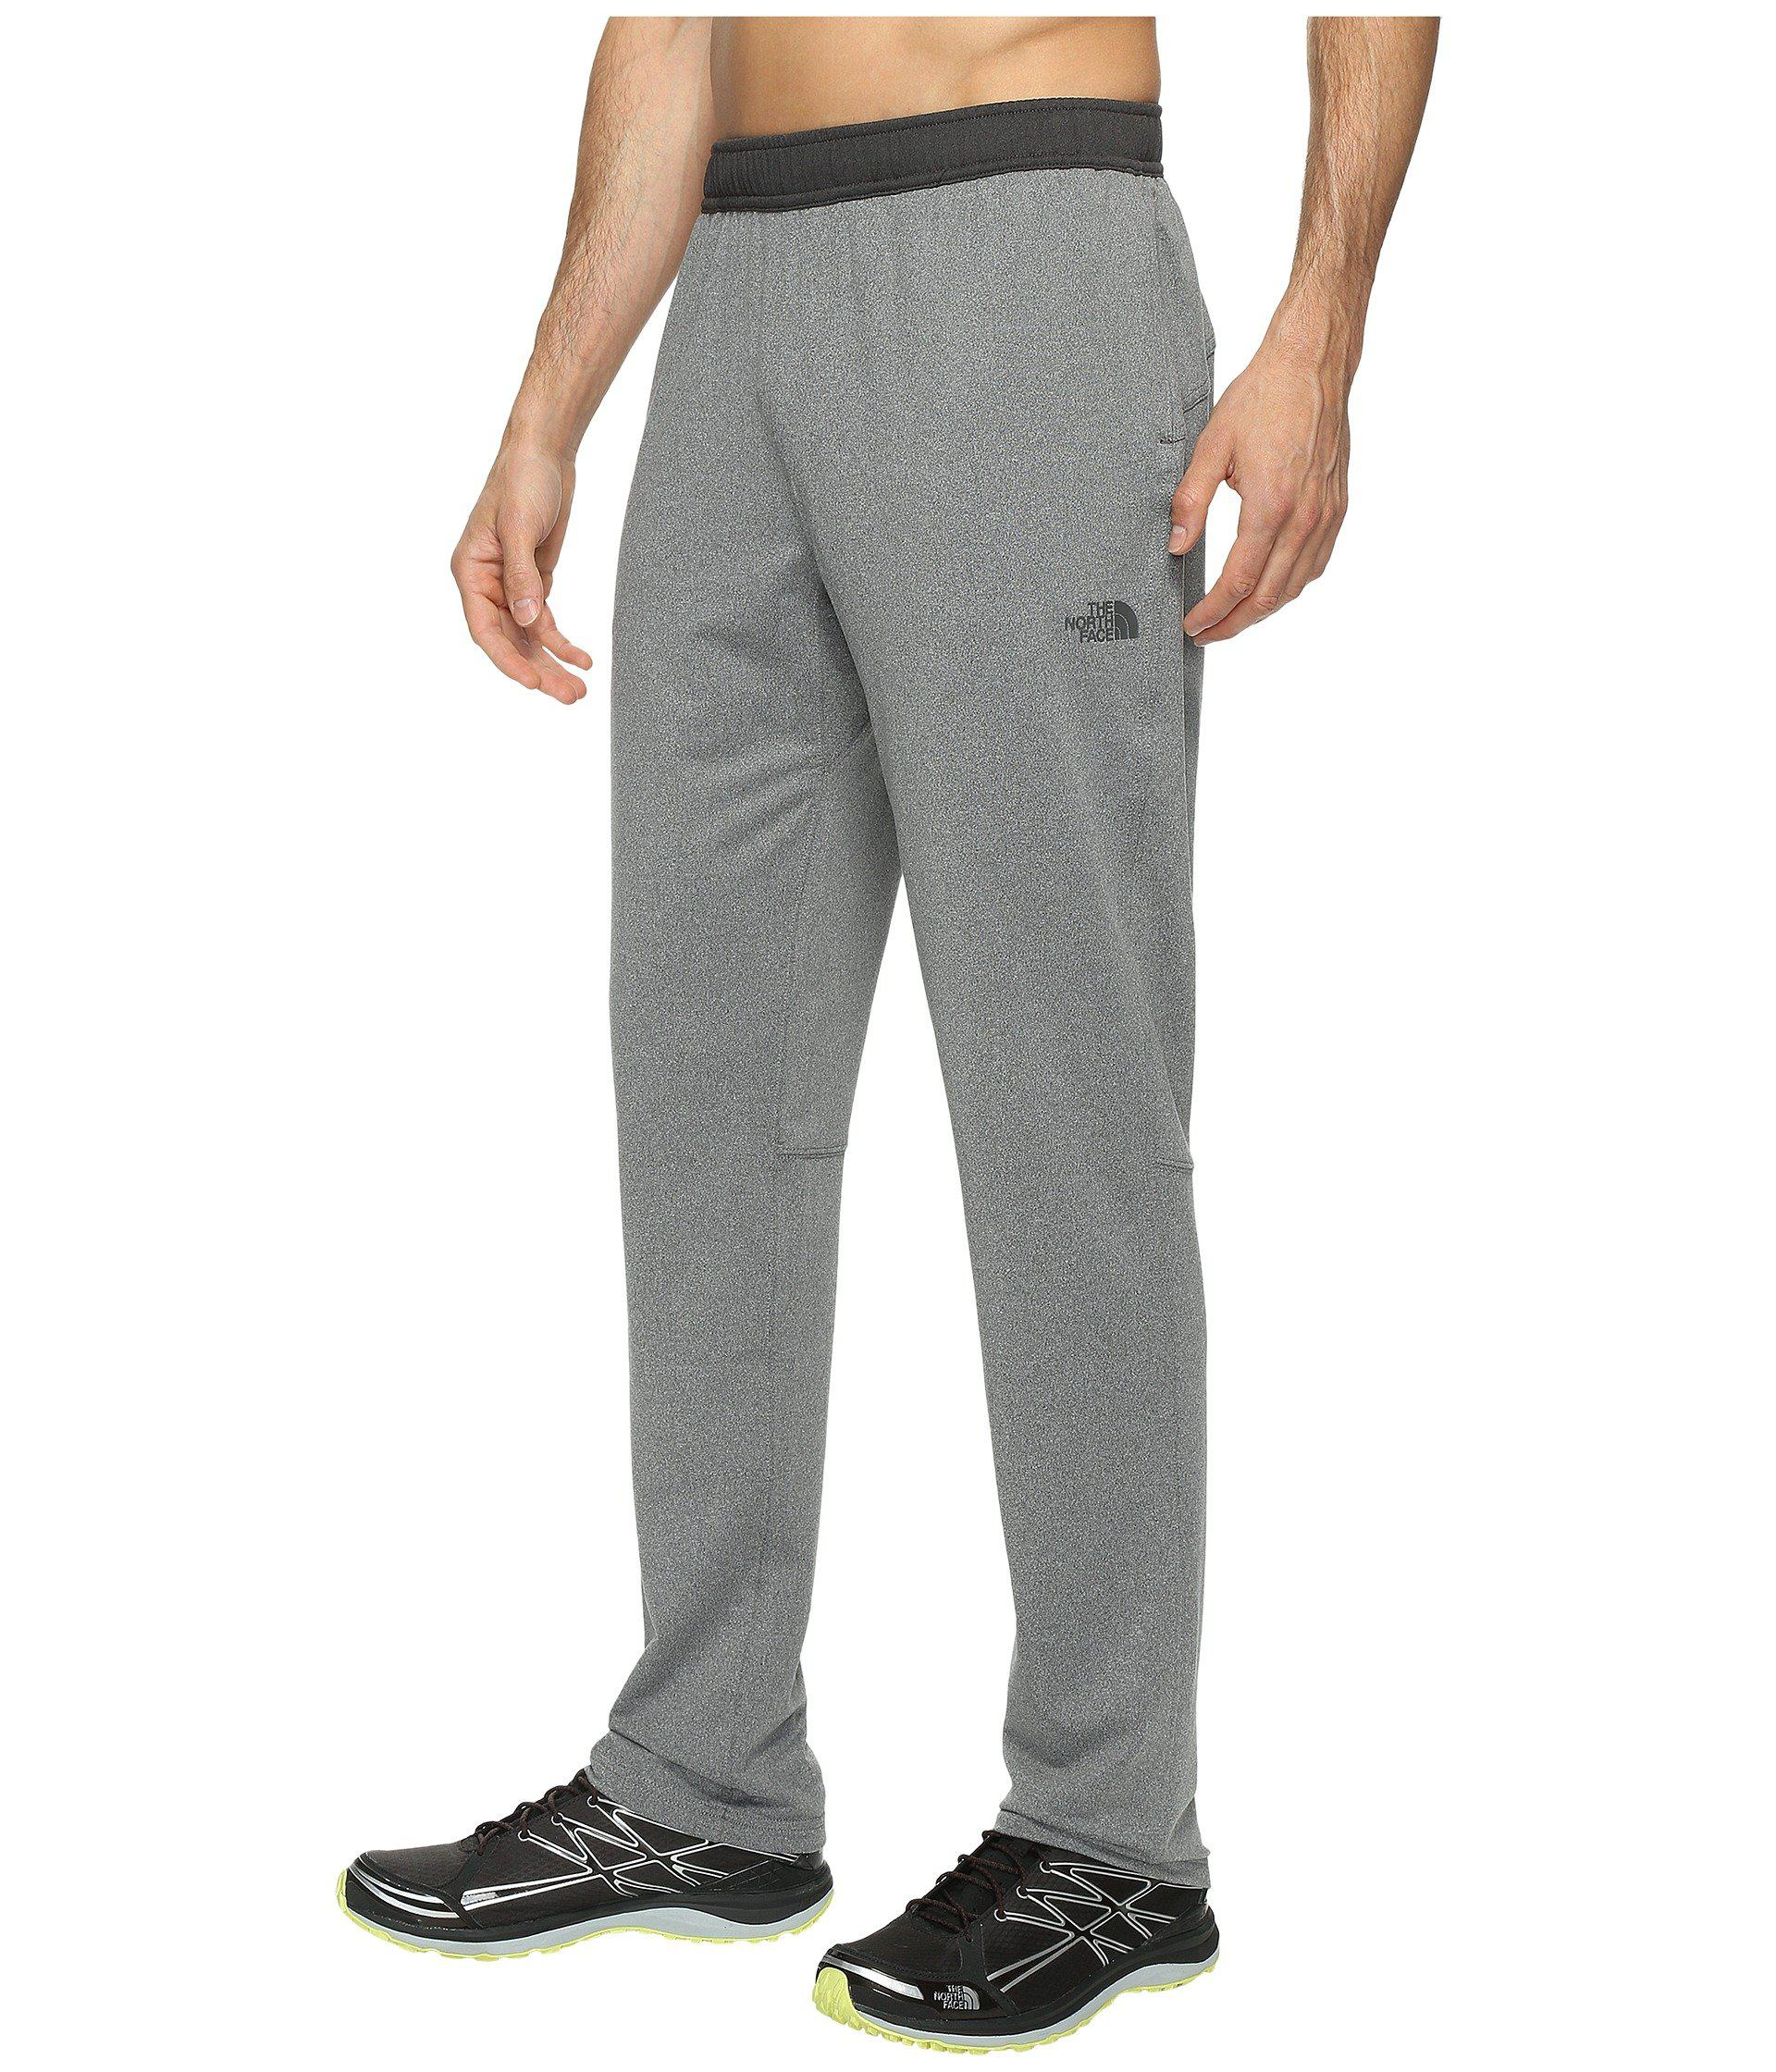 dced2fdb0 Lyst - The North Face Versitas Pants in Gray for Men